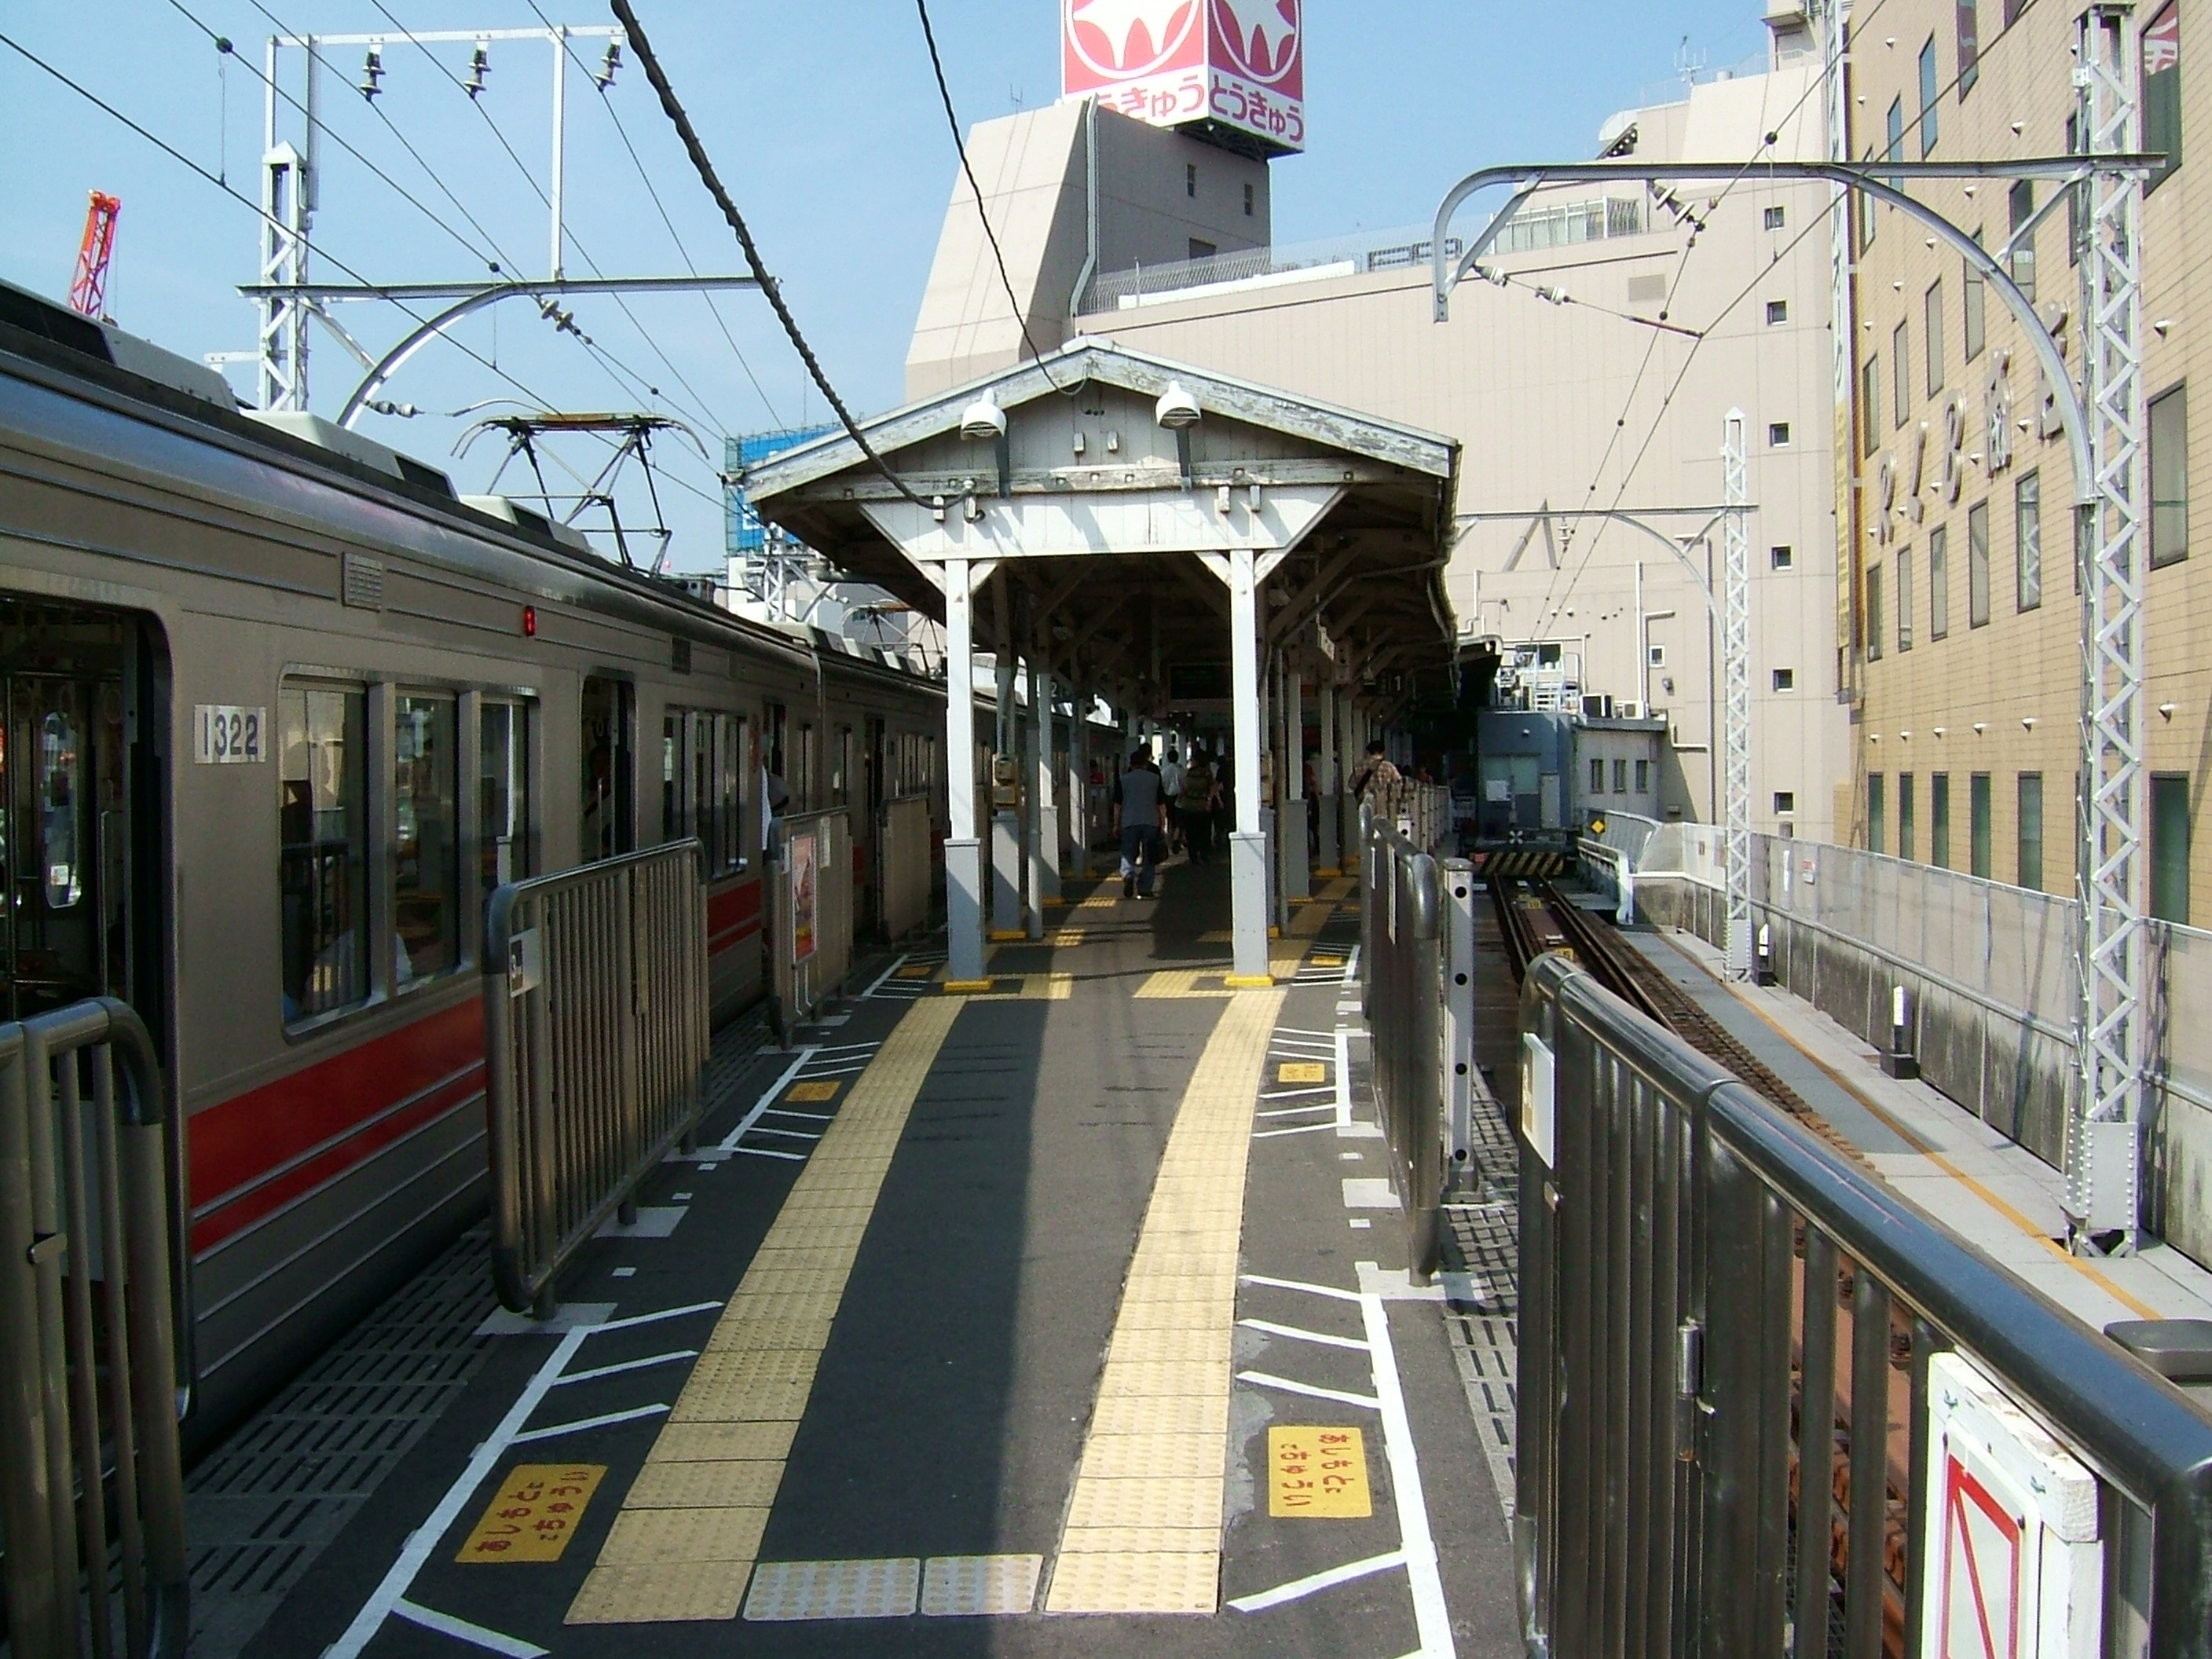 https://upload.wikimedia.org/wikipedia/commons/d/df/Tokyu-gotanda-platform.jpg